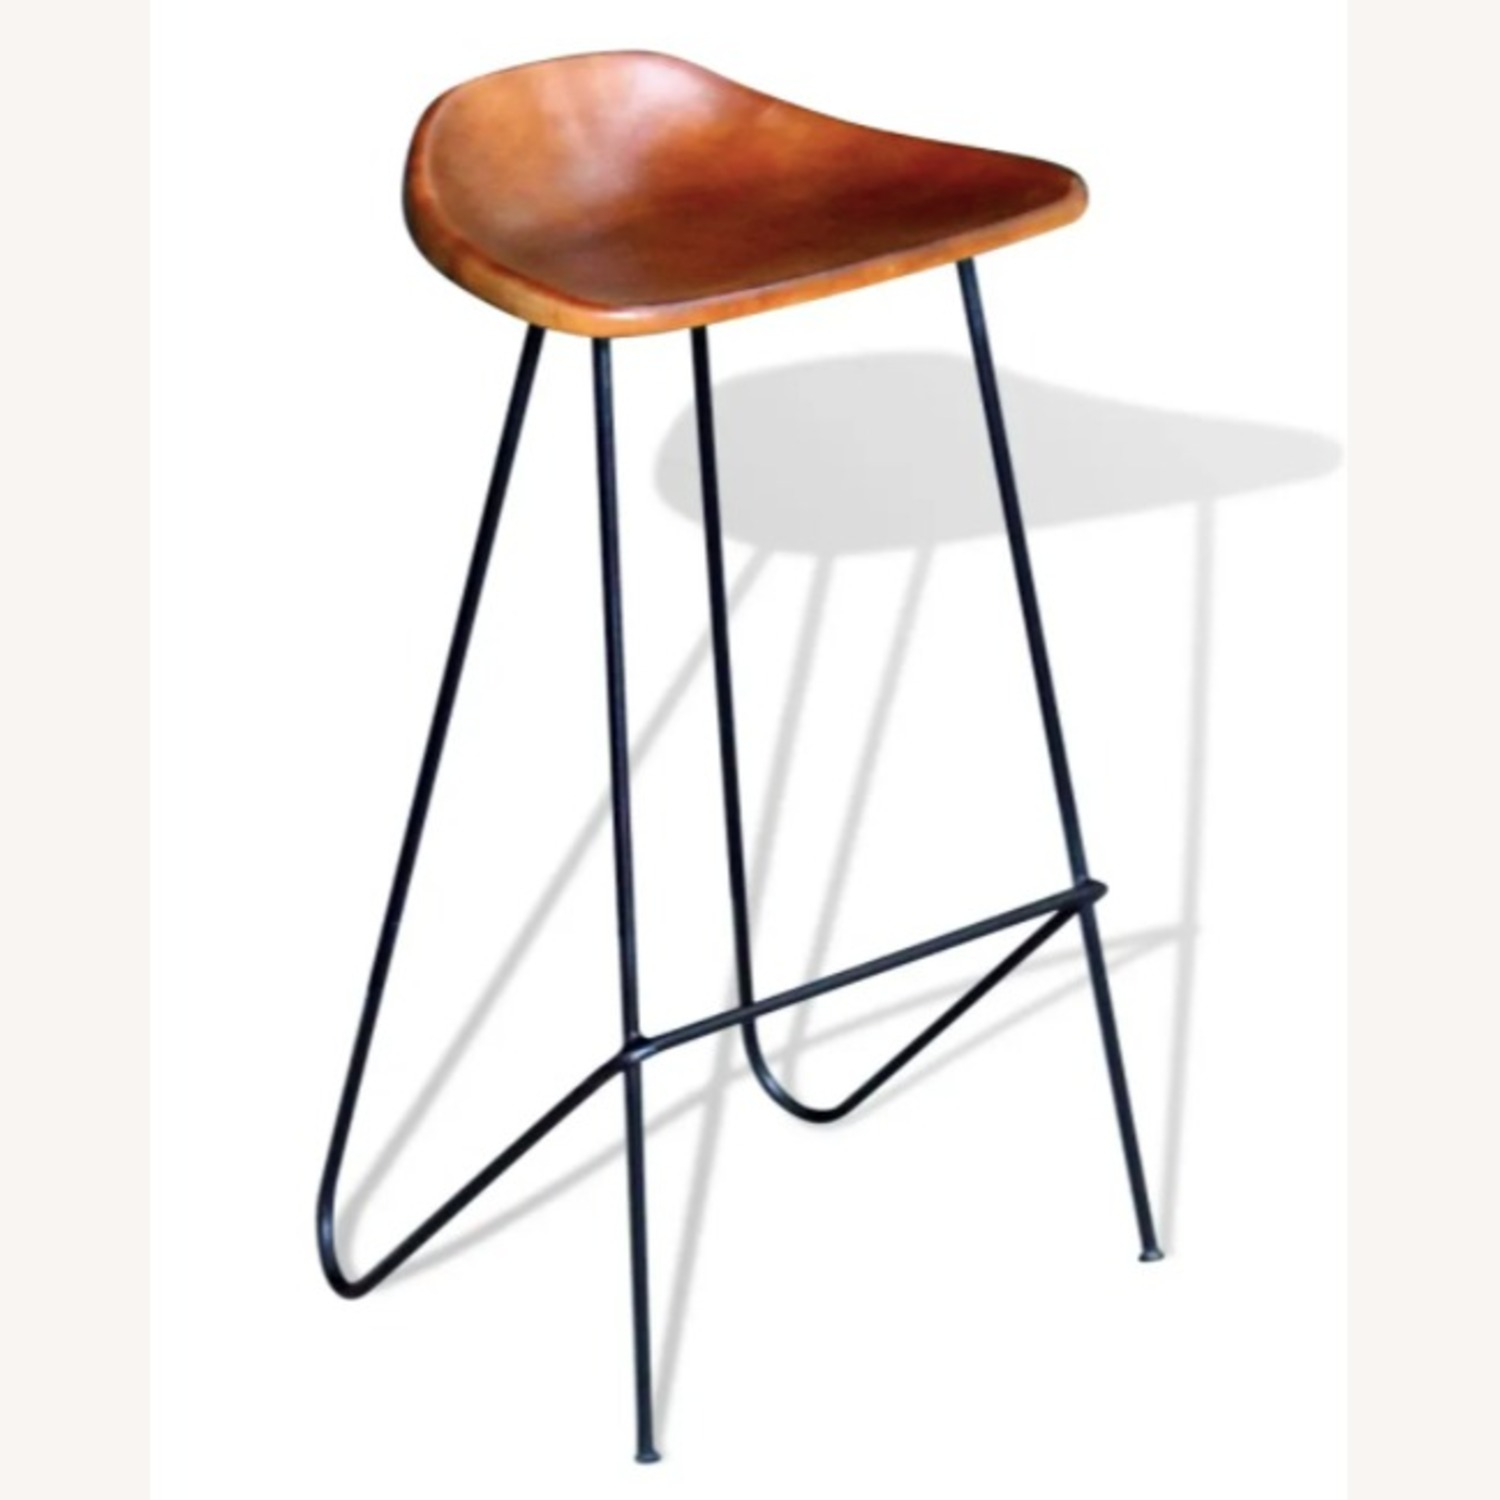 Mid Century Modern Set of 4 Brown Leather Stools - image-1